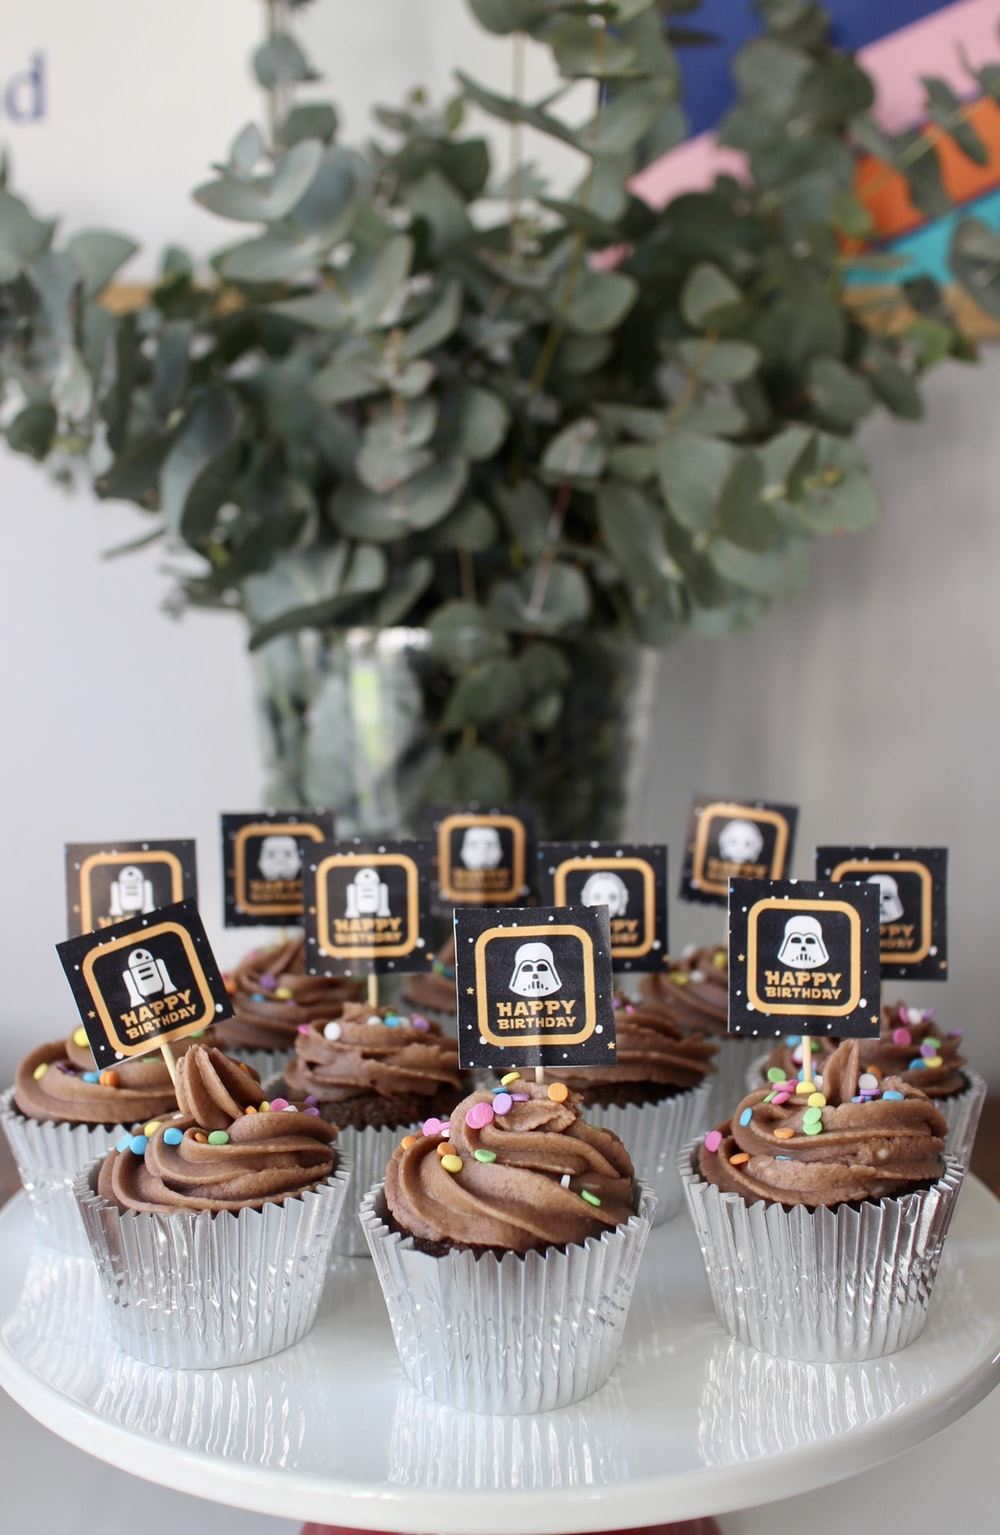 brown and white cupcakes on white wooden table